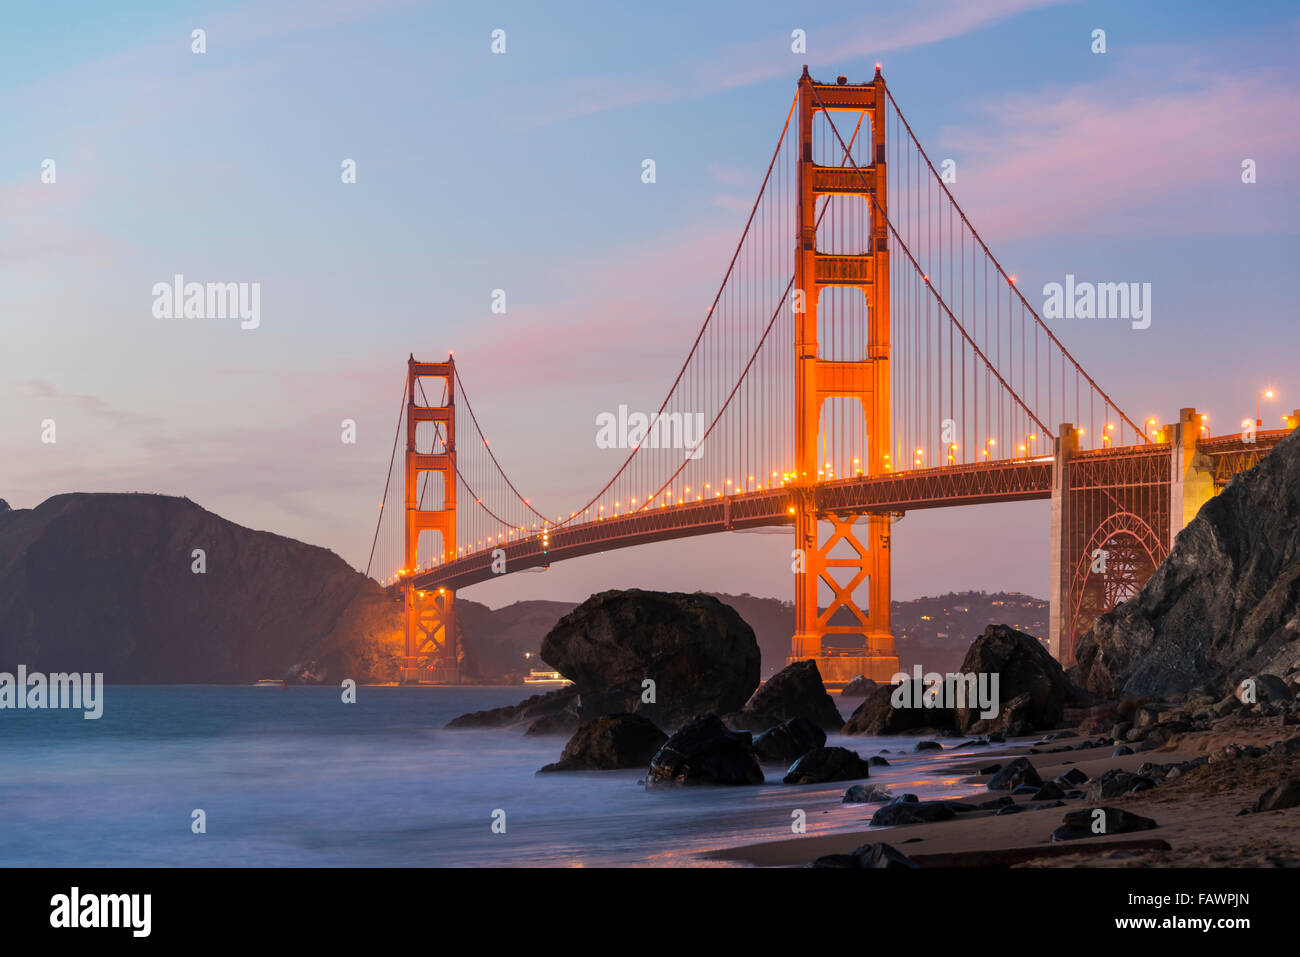 Golden Gate Bridge, Marshall's Beach, notte, costa rocciosa, San Francisco, Stati Uniti d'America Immagini Stock